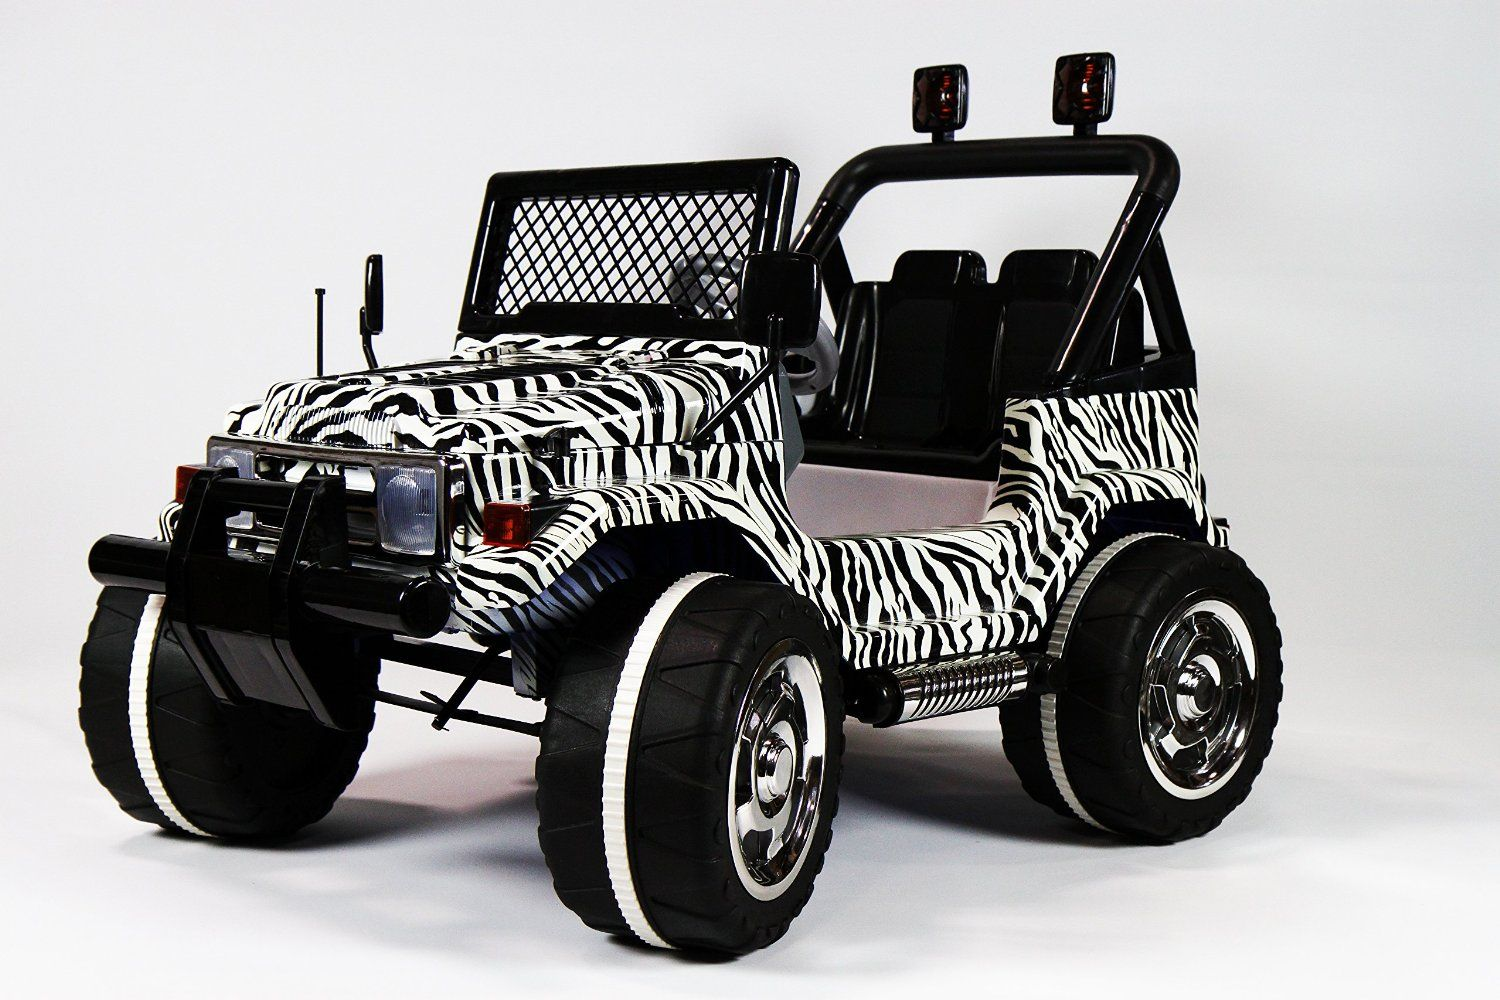 Ride On Car Toy Jeep Wrangler Style 2 Motors 2 Battery Remote